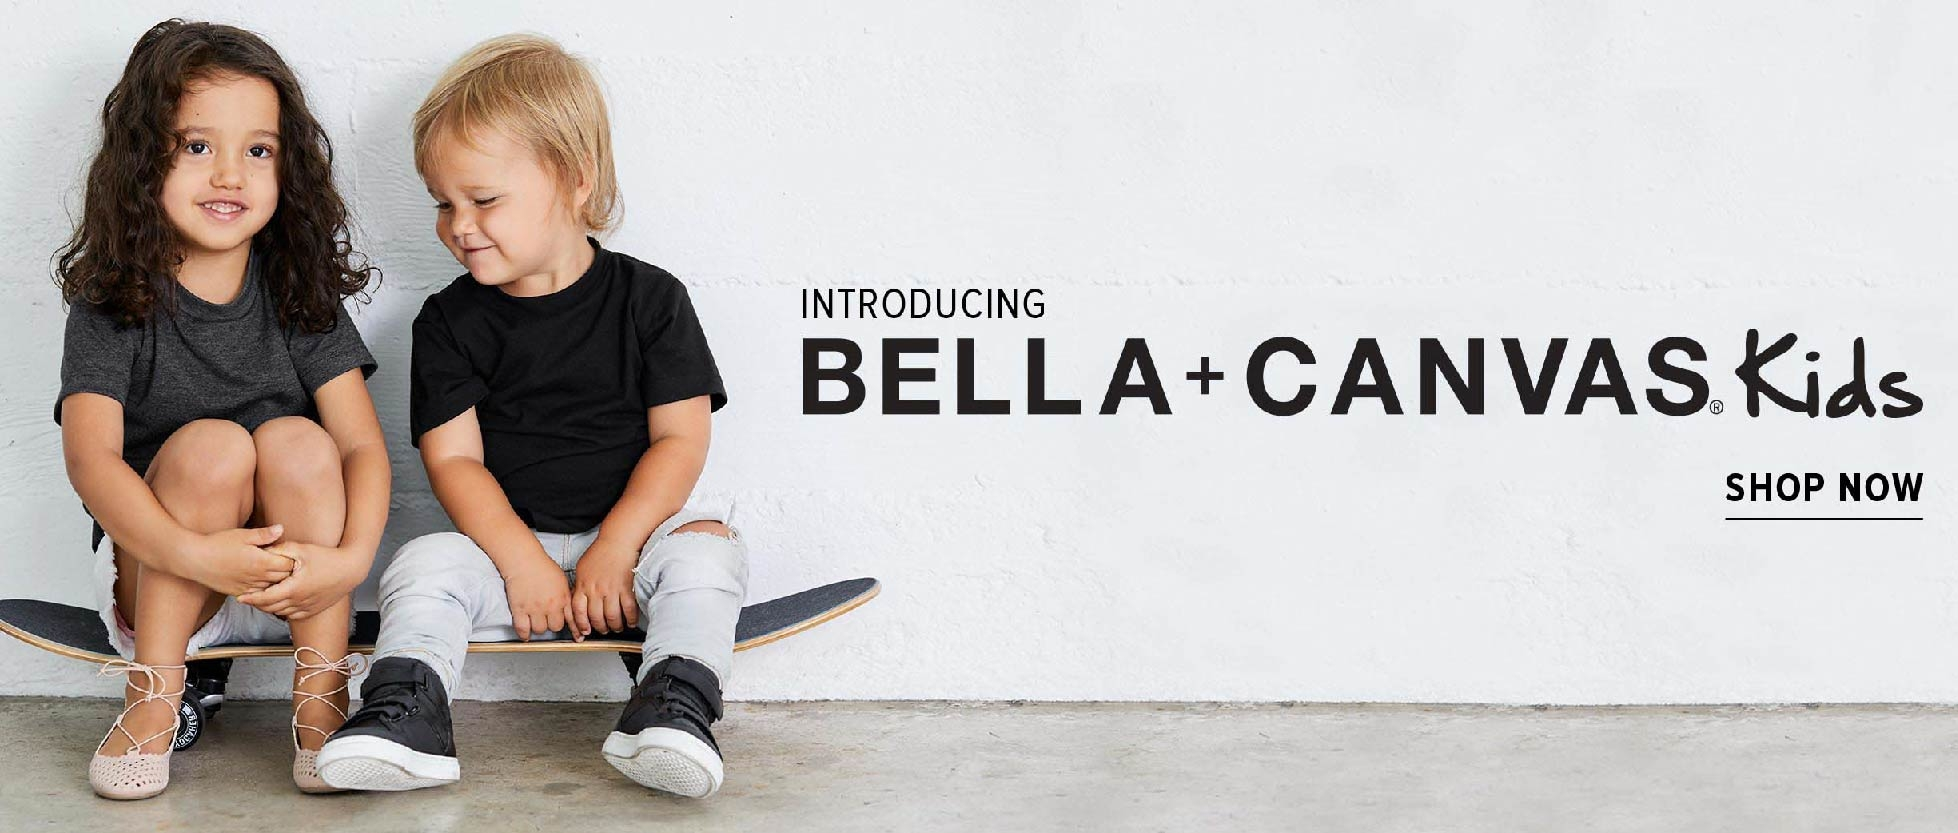 Bella + Canvas --> 100B